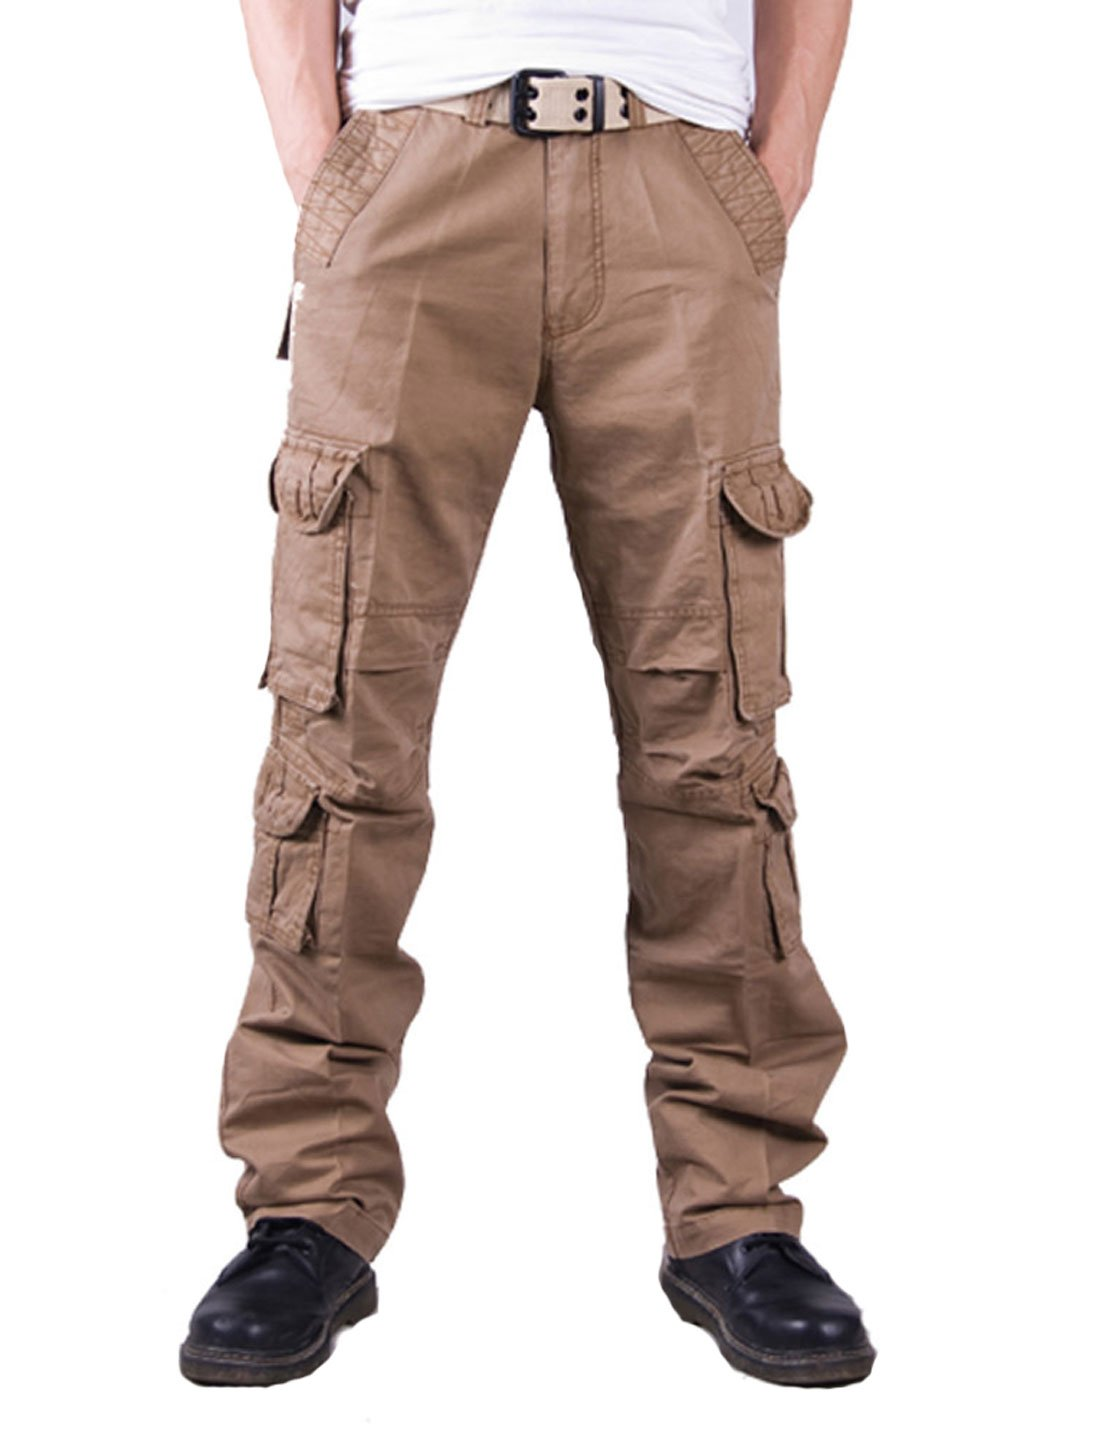 Yeokou Men's Casual Outdoor Camo Military Cotton Wild Cargo Work Pants Trousers